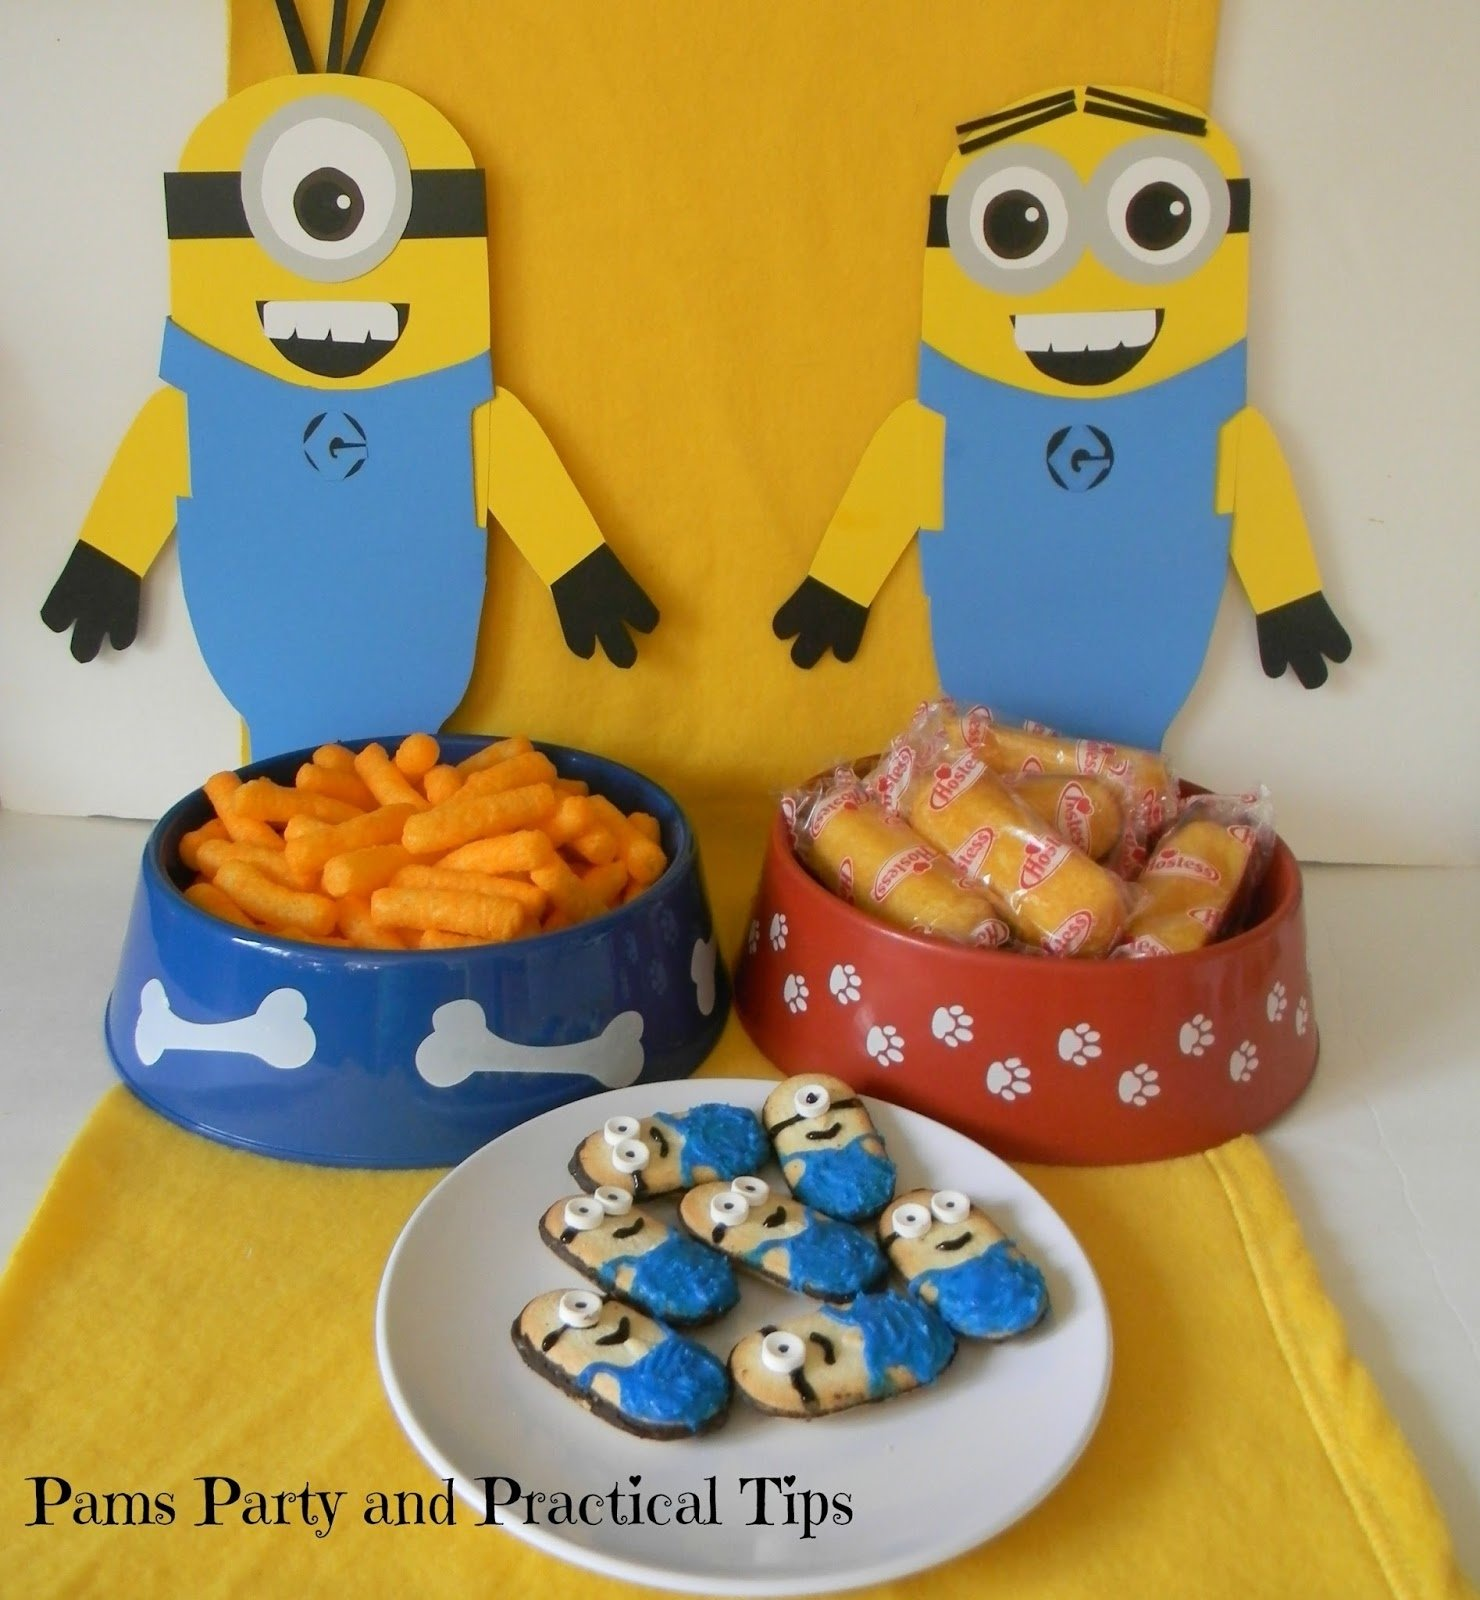 10 Stylish Despicable Me Party Food Ideas pams party practical tips despicable me party food and game ideas